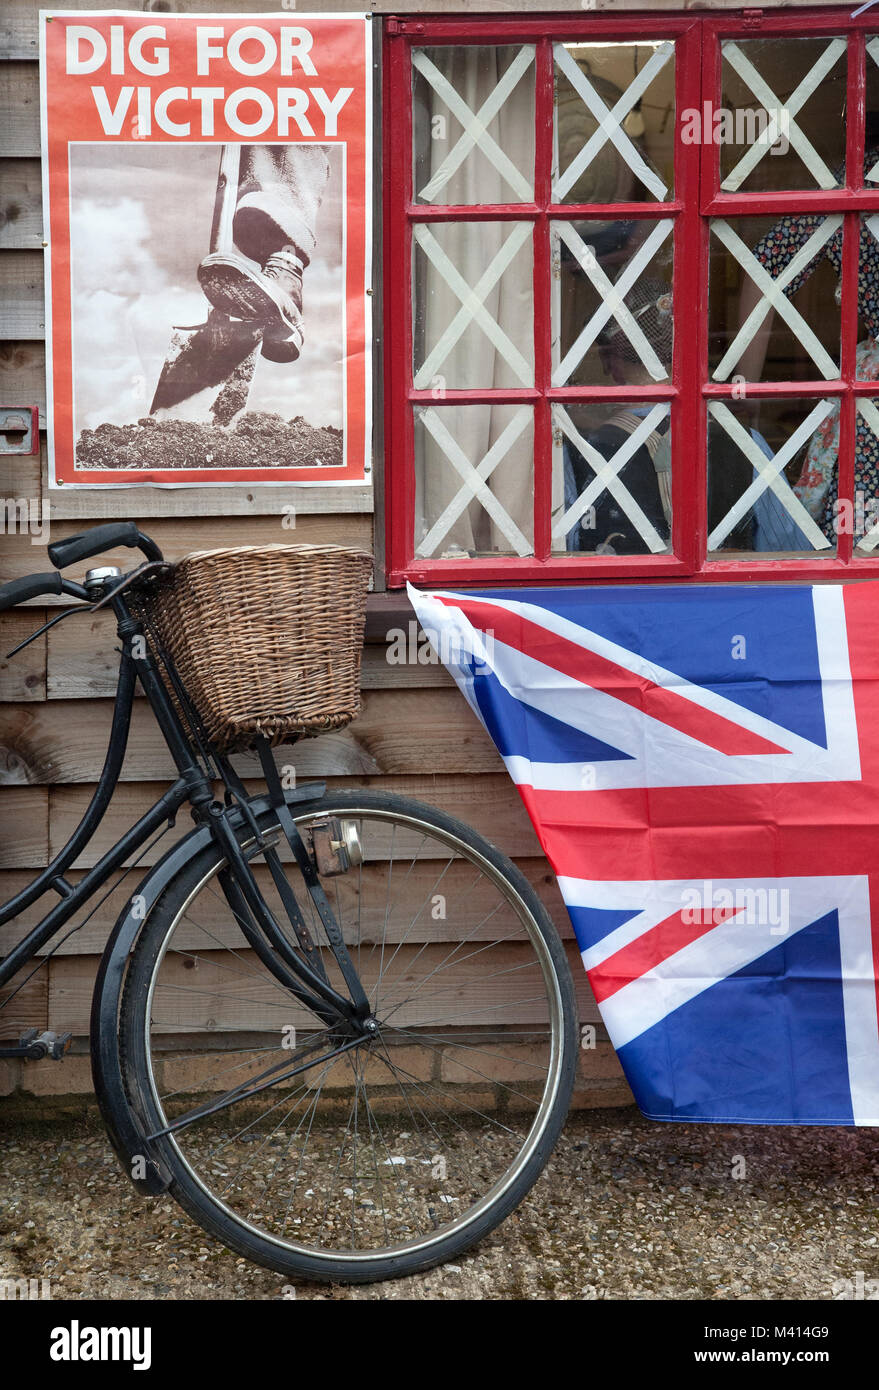 An old bicycle, a Union flag and a World War 2 'Dig For Victory' poster outside a wooden hut at Pitstone - Stock Image